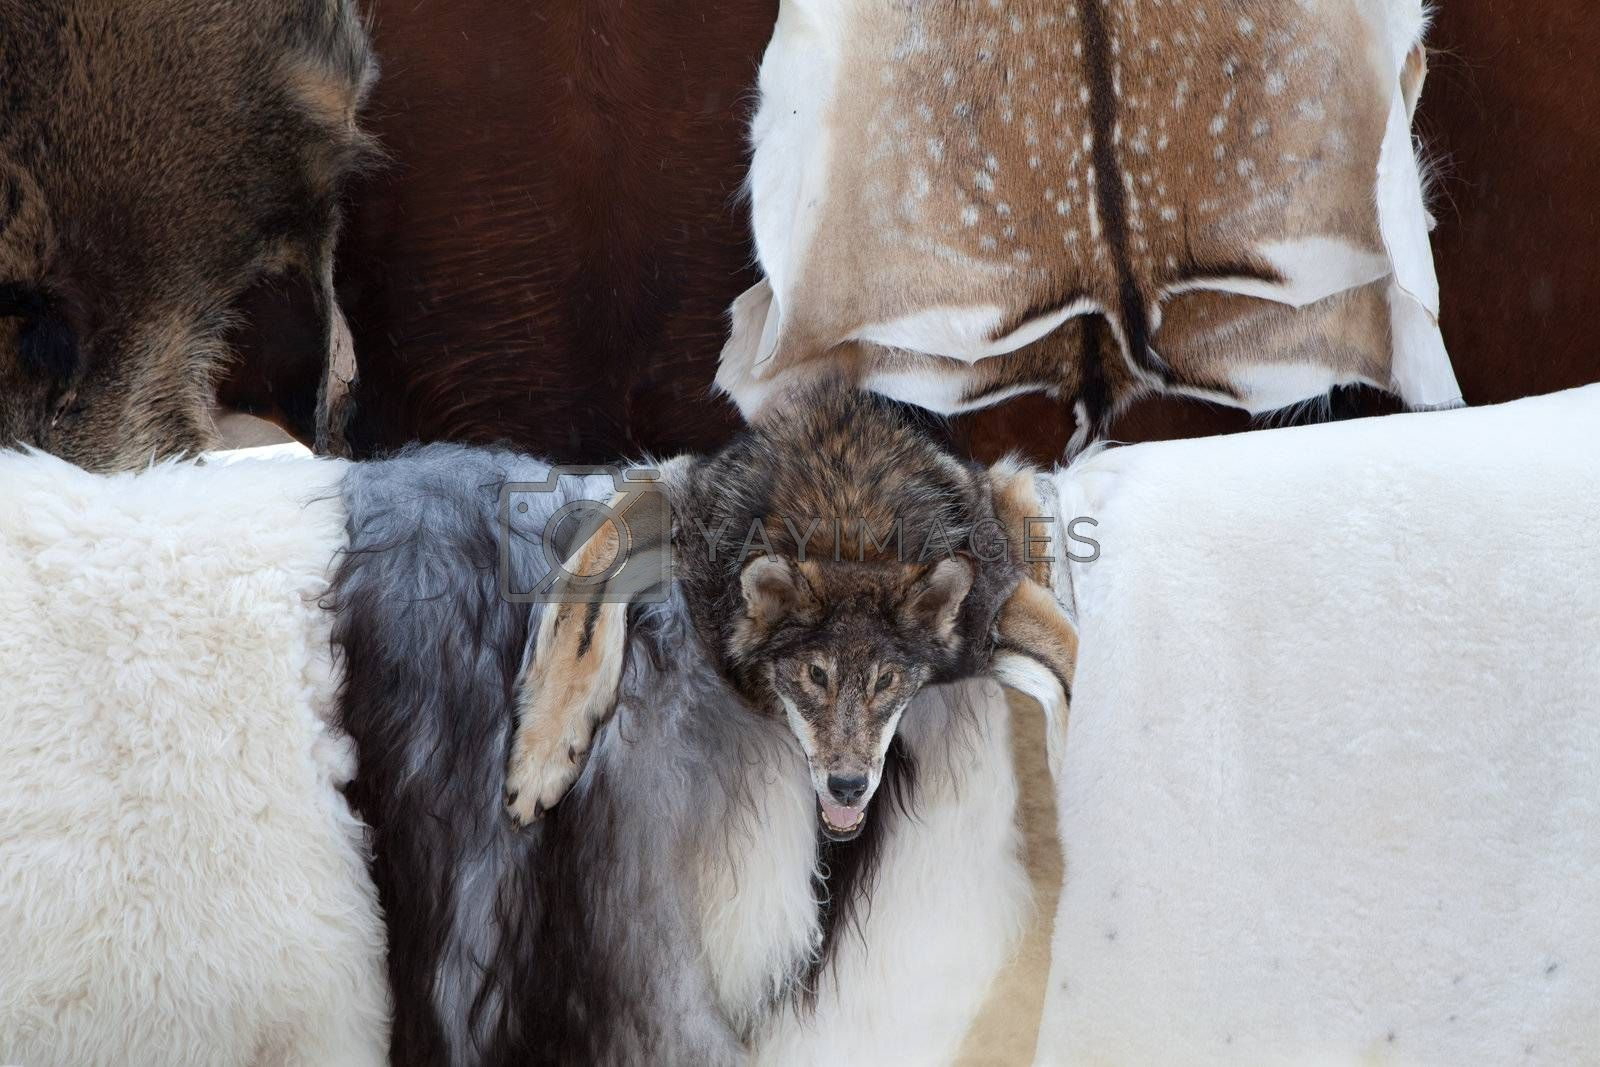 Wild animal fur skins of killed deers, goats and wolf head selling at craft market